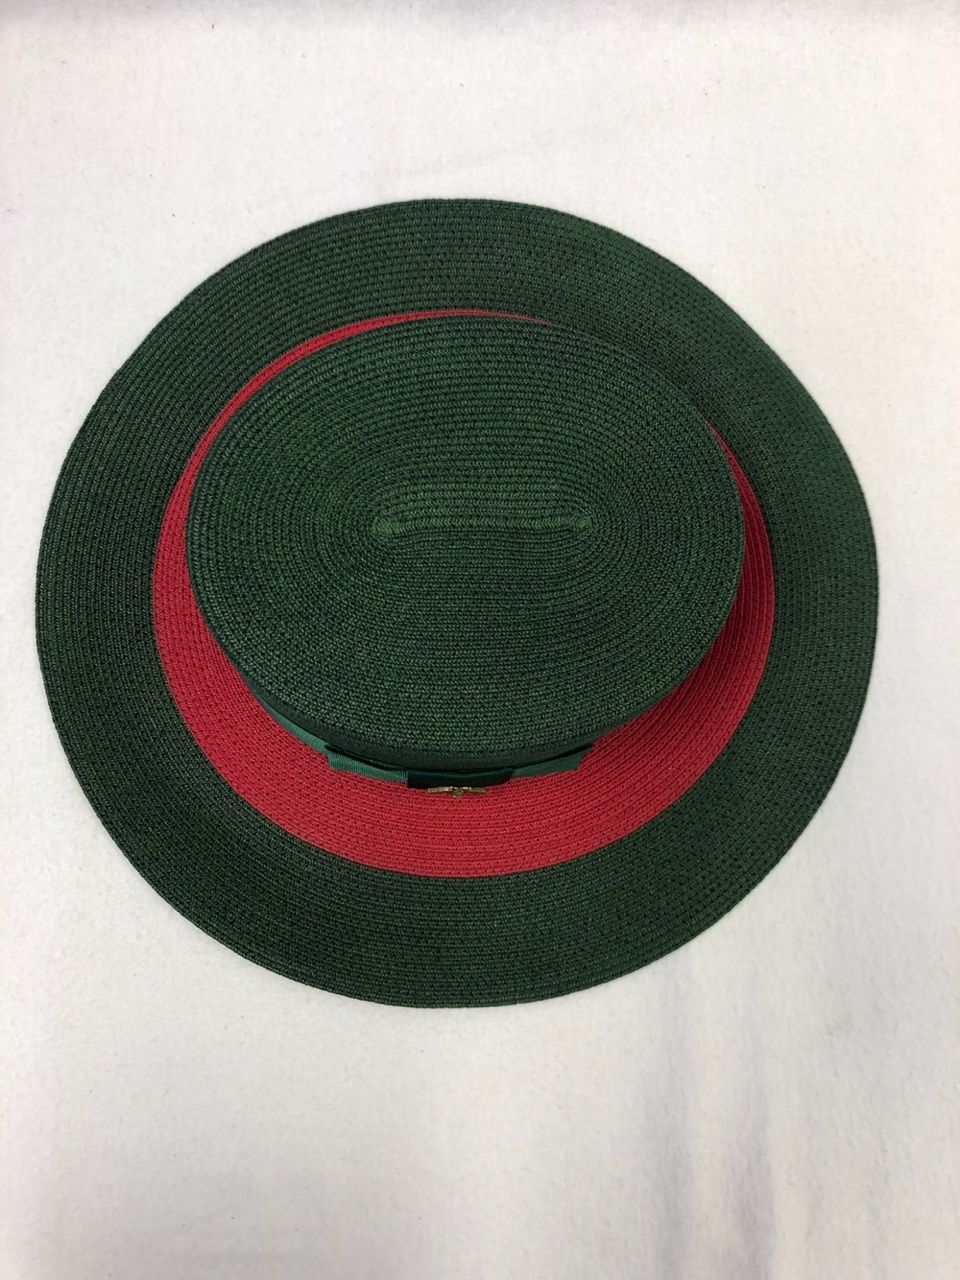 Gucci Papier wide brim hat green/red papier Style # 454667 3HF58 3066